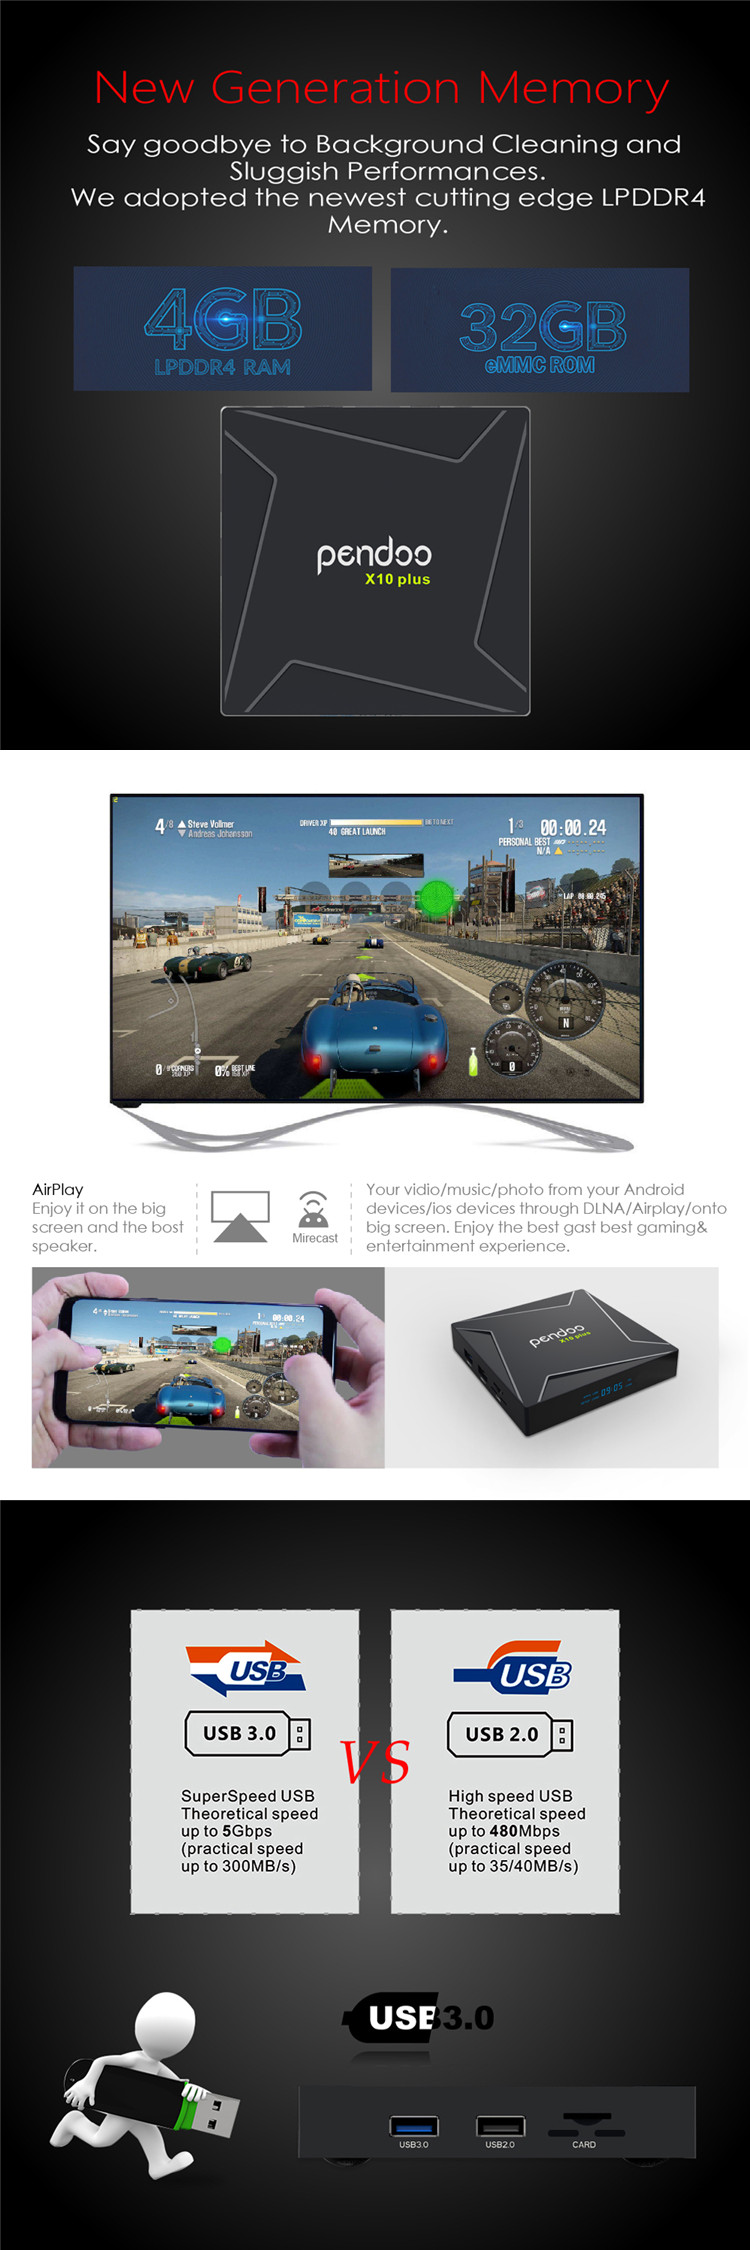 Android 8.1 tv box Pendoo X10 Plus Amlogic S905X2 4K 4GB DDR4 RAM 32G ROM KD player 18.0 Smart Tv Box 10 Plus